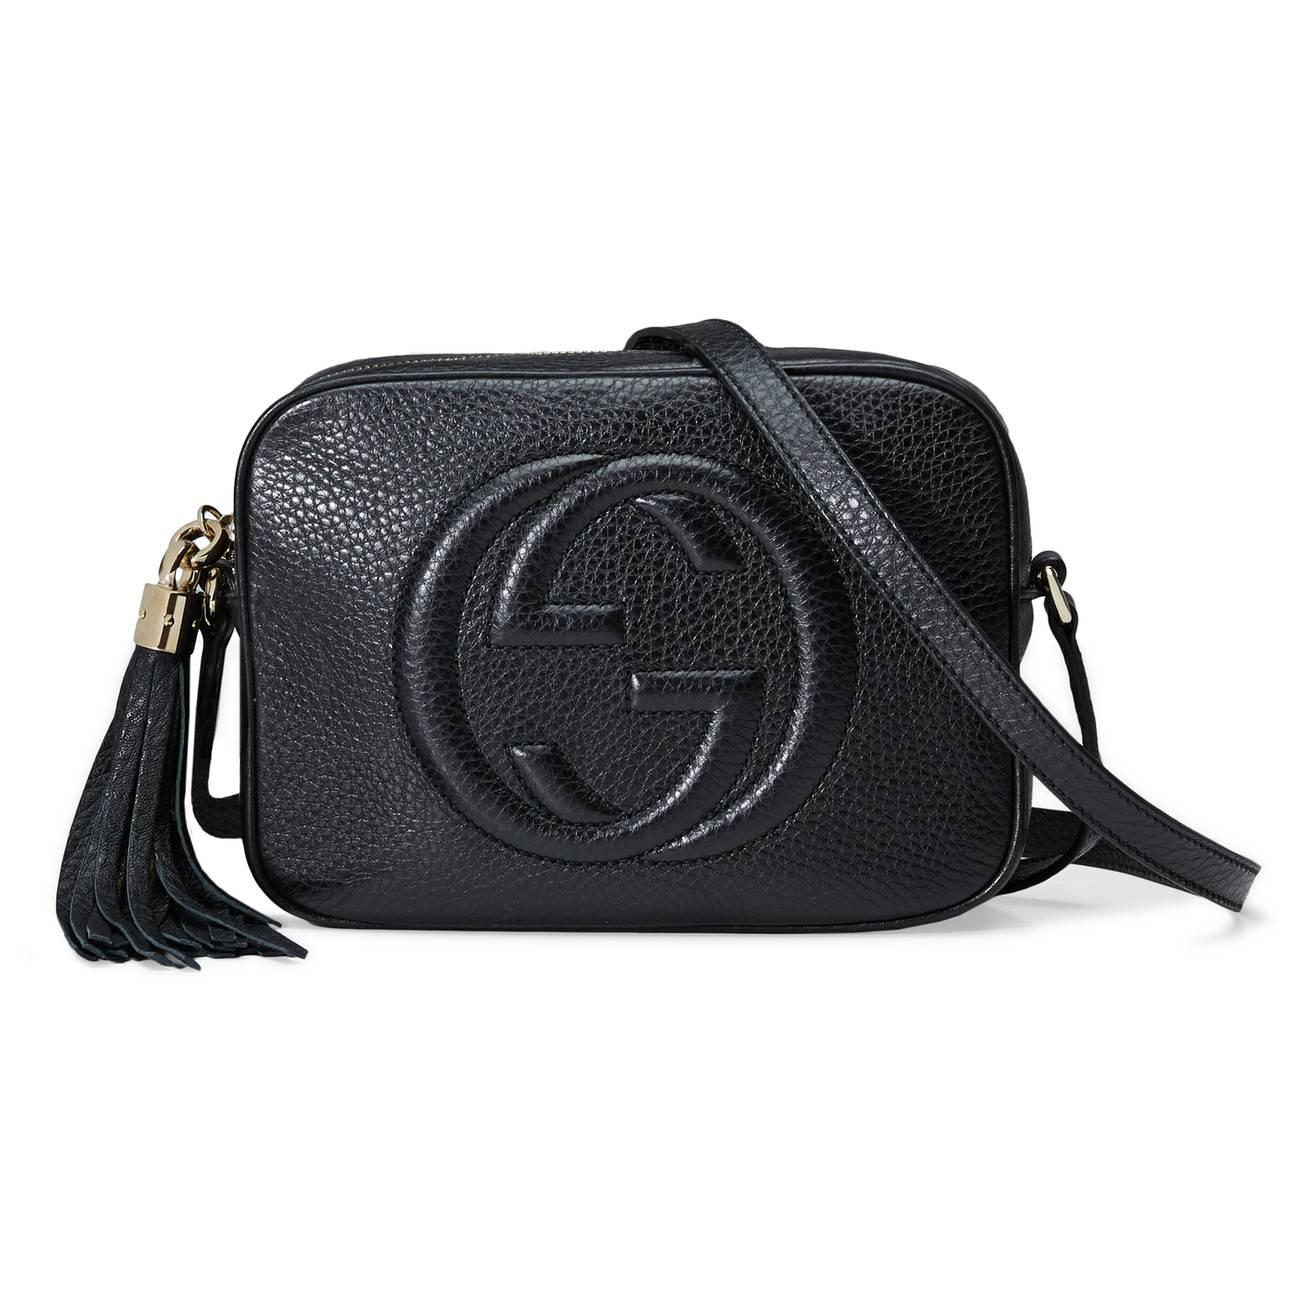 7989240d7802 Lyst - Gucci Soho Small Leather Disco Bag in Black